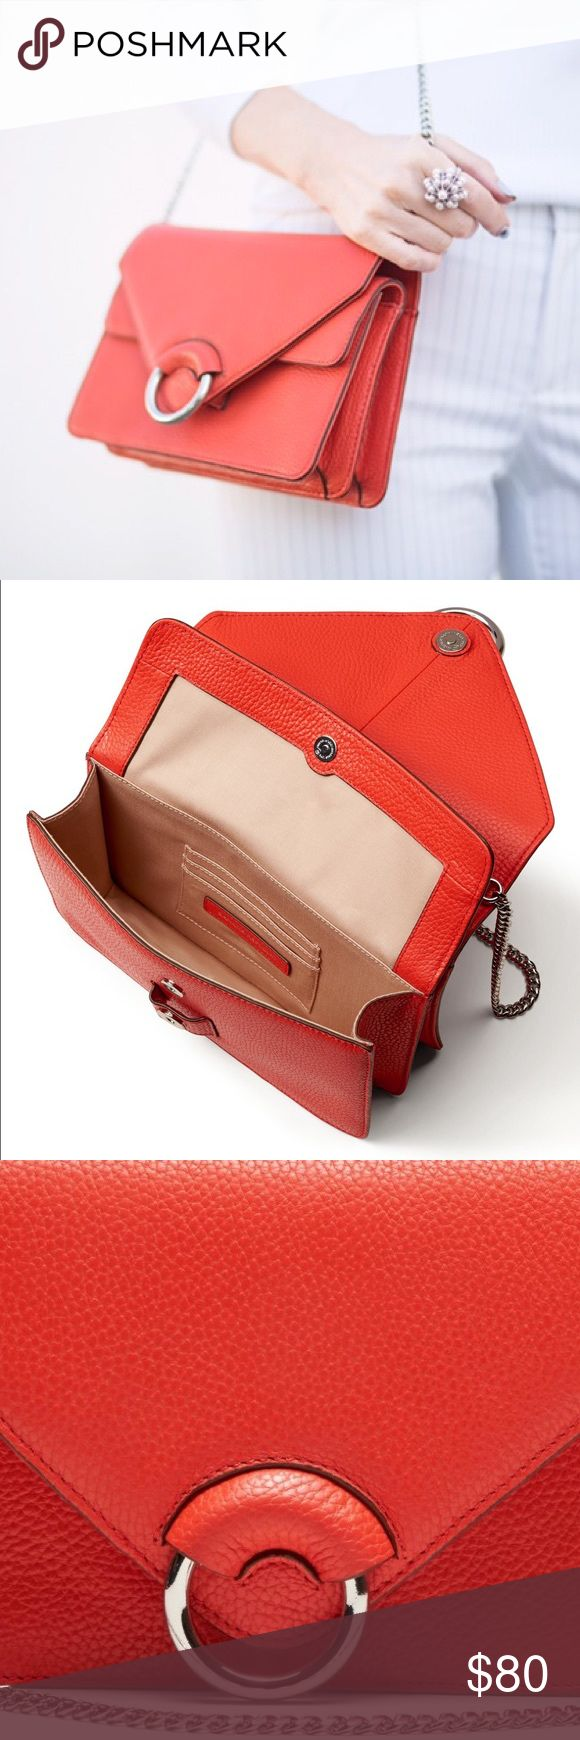 banana republic Italian leather accordian bag Poppy orange leather, must have for the season. Brand new! Banana Republic Bags Shoulder Bags